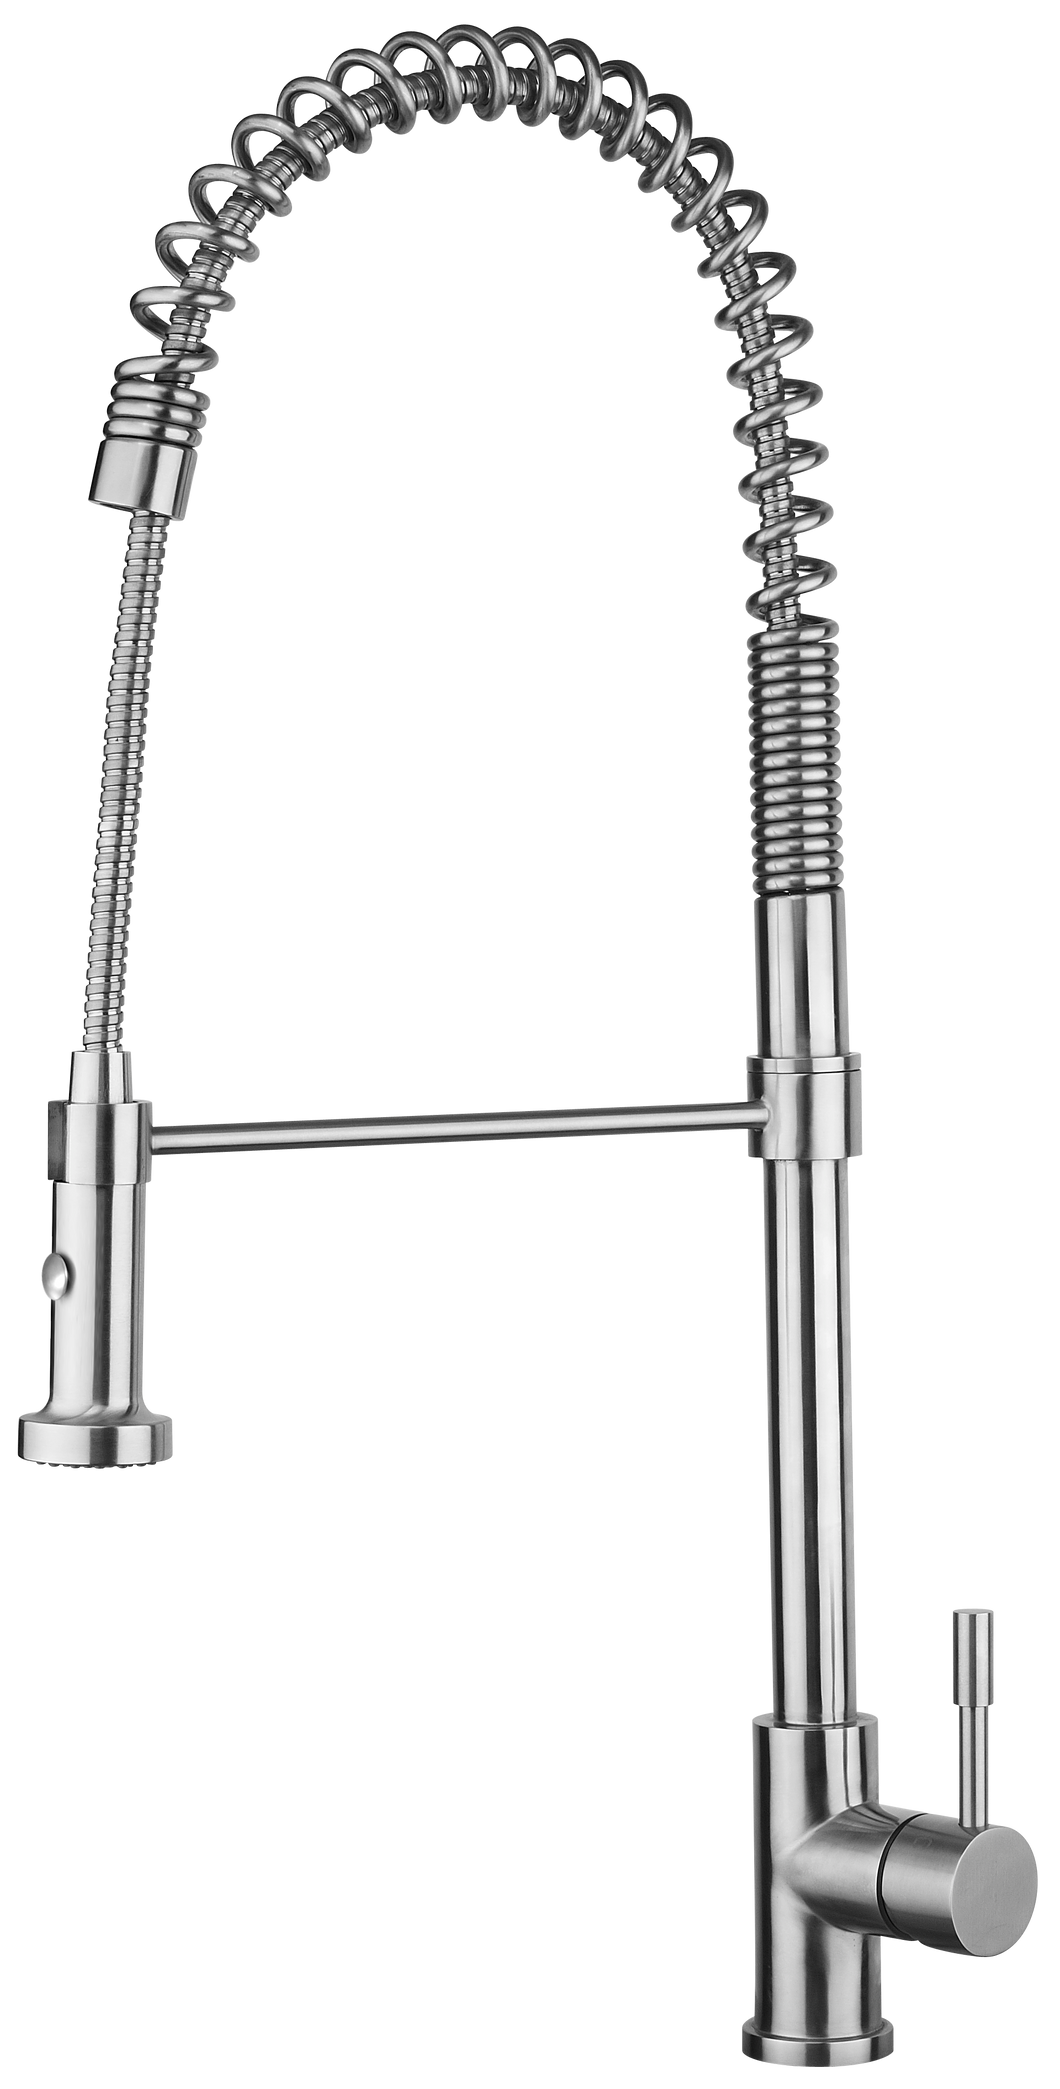 Bari restaurant-style stainless steel kitchen sink faucet Eurolux